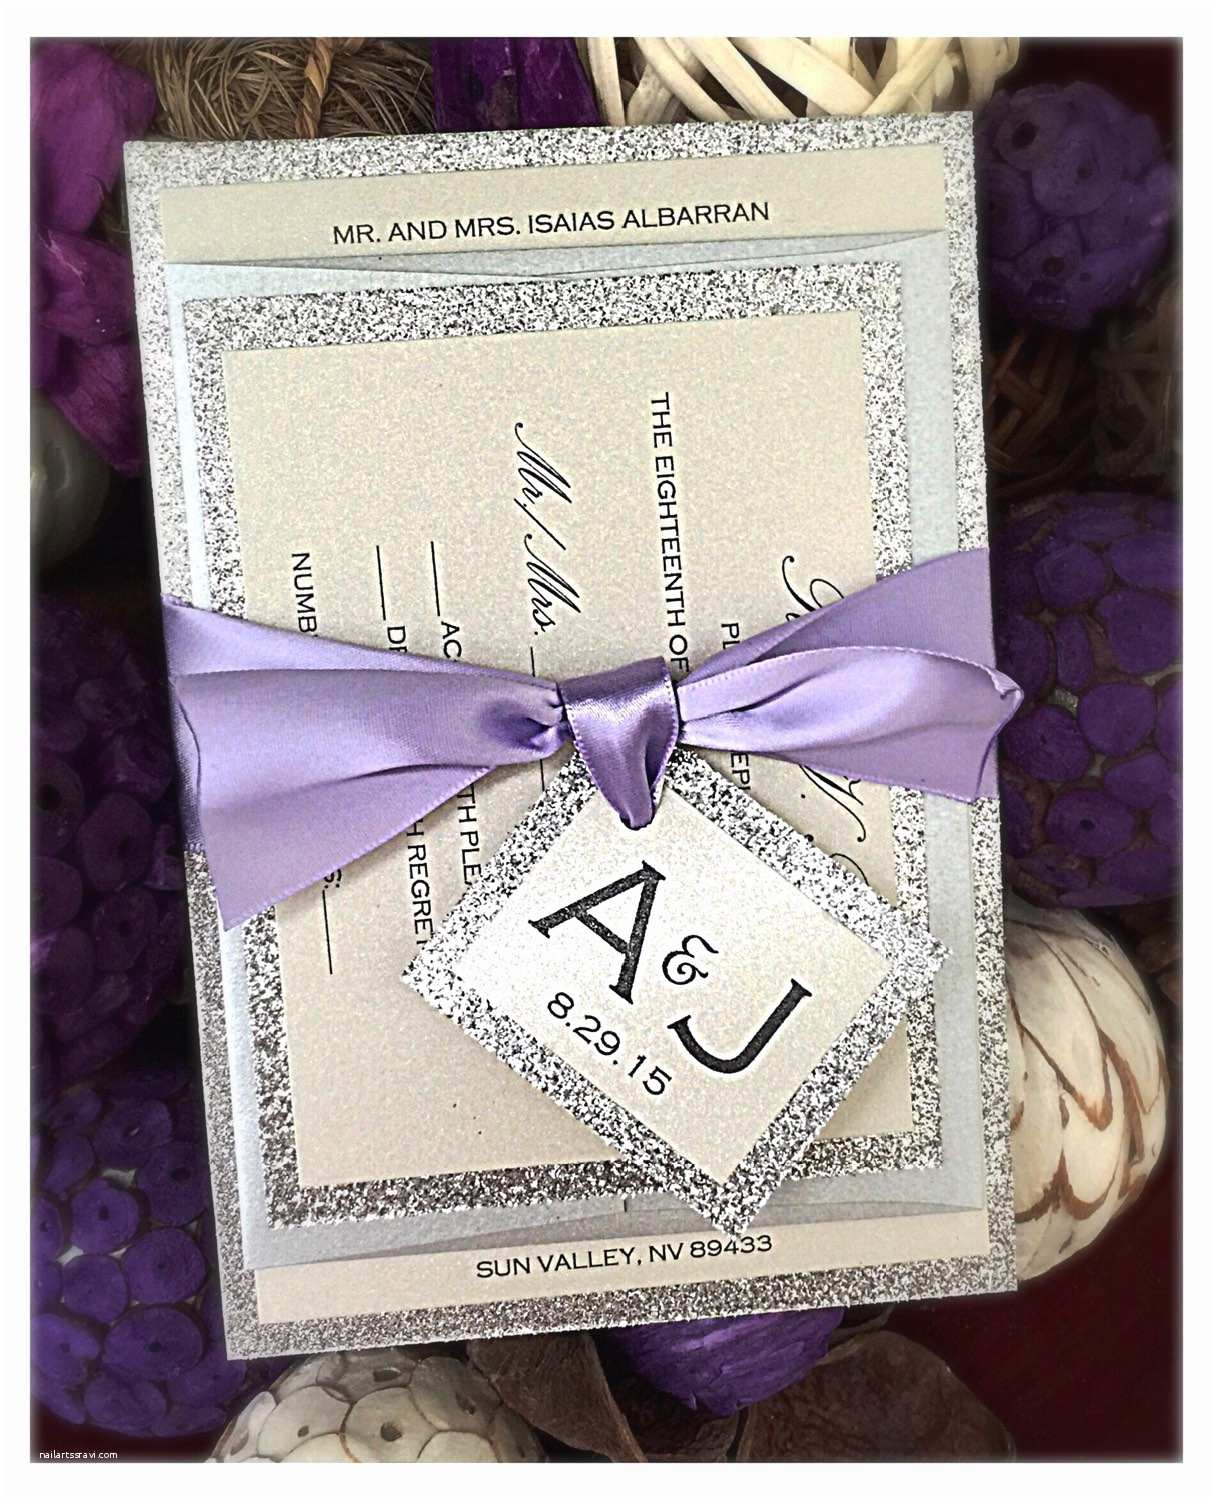 Lilac and Silver Wedding Invitations Plum and Silver Wedding Invitations Lilac Invitations